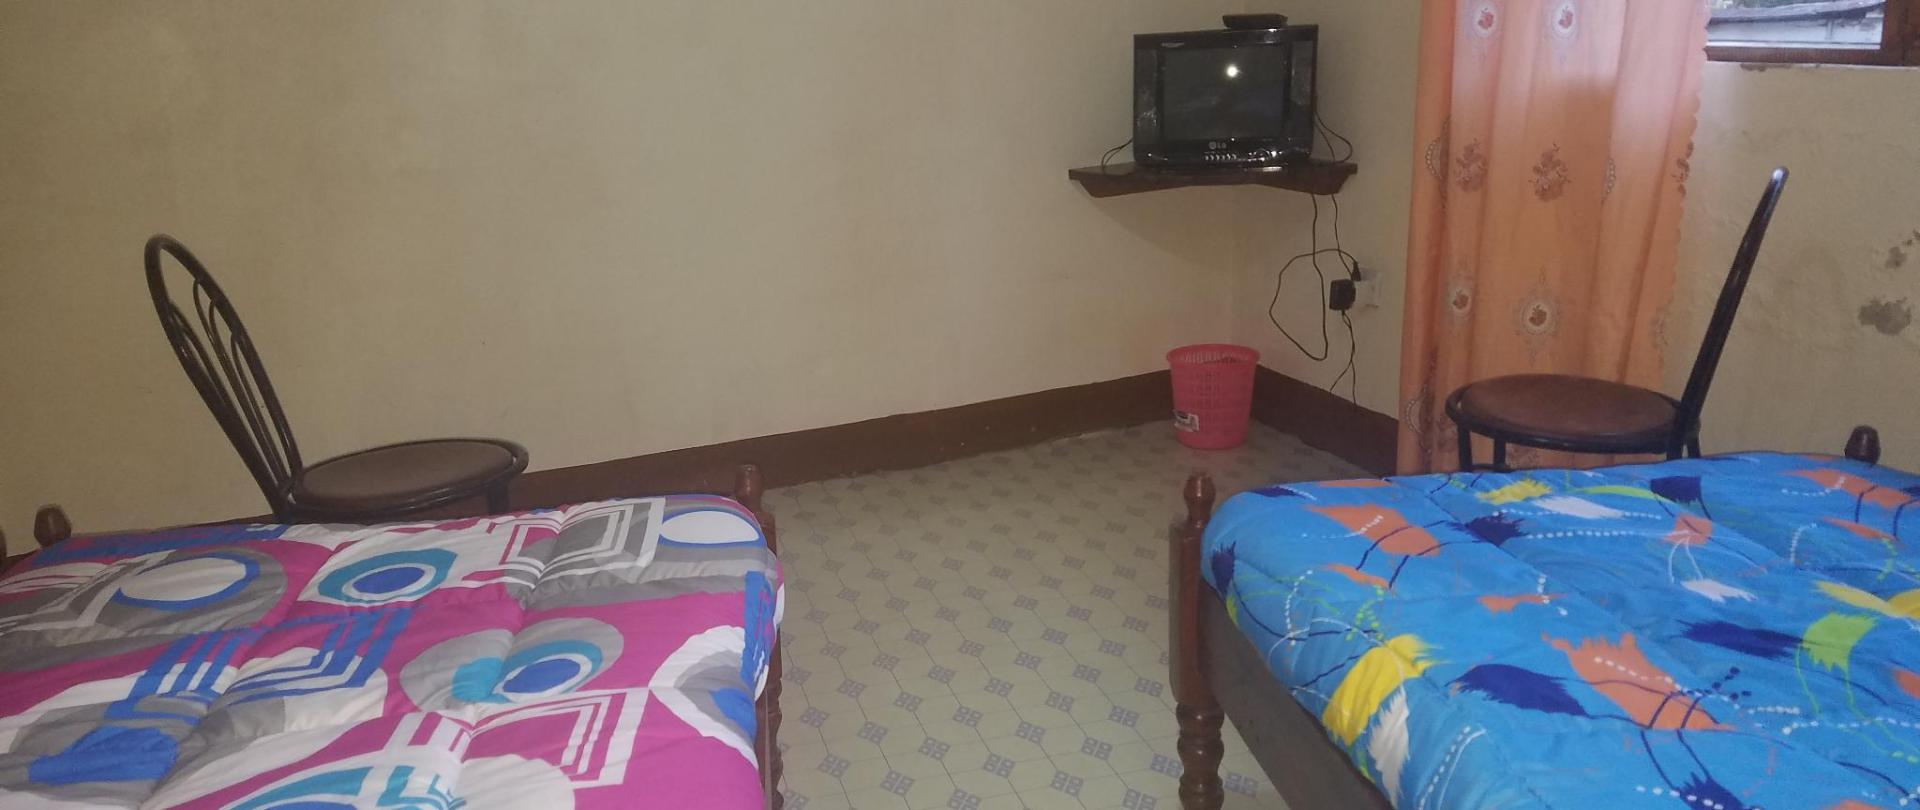 3. Showing TV for the Hotel Room in Naivasha Kenya.jpg